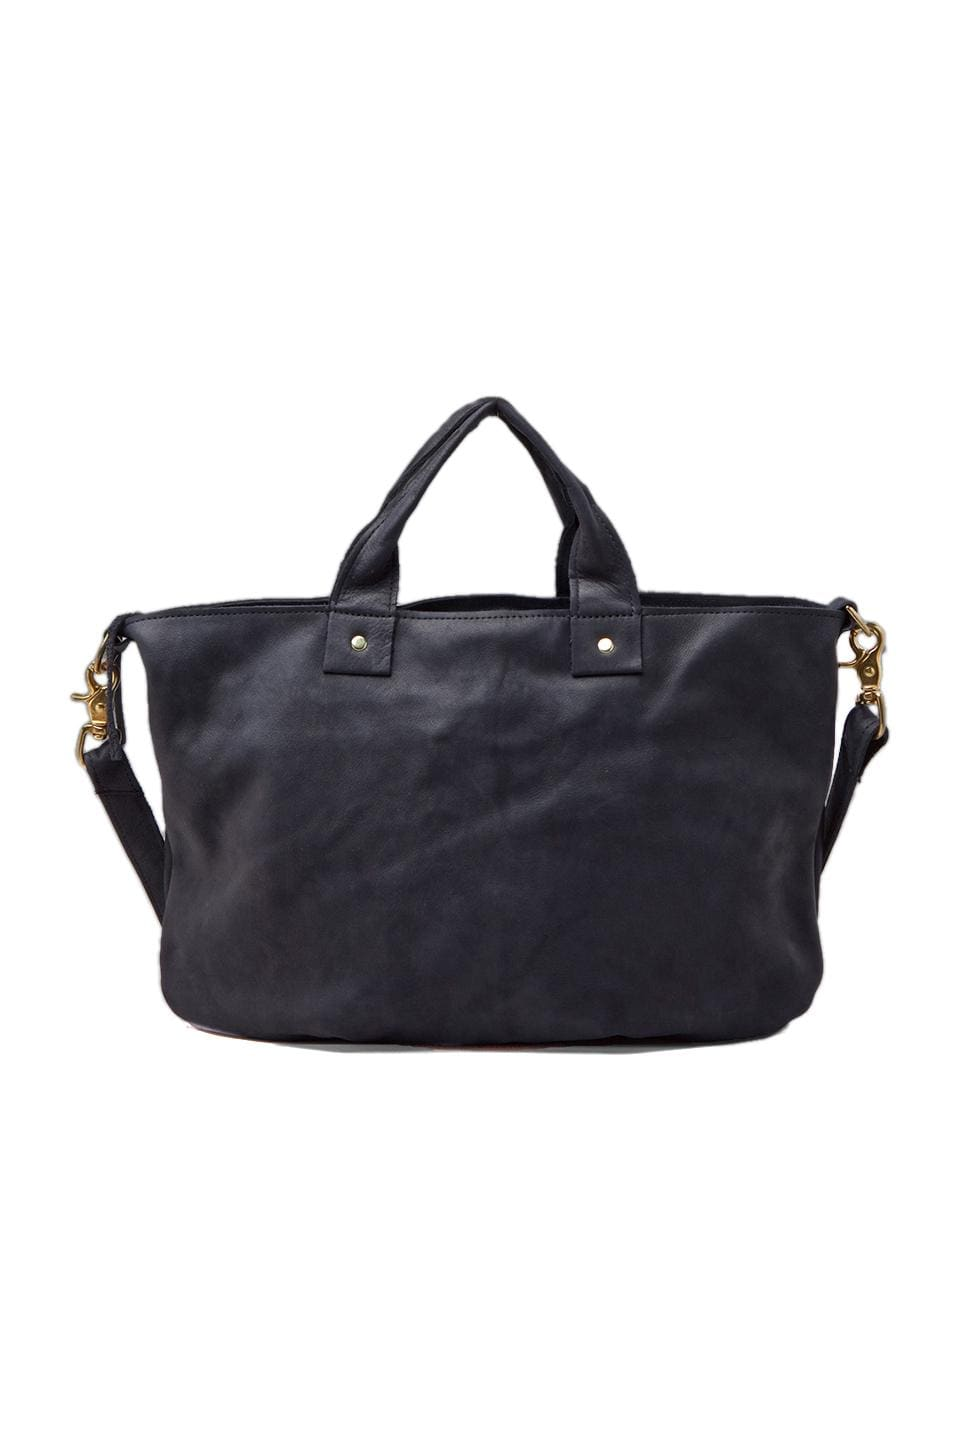 Clare V. Messenger Bag in Navy